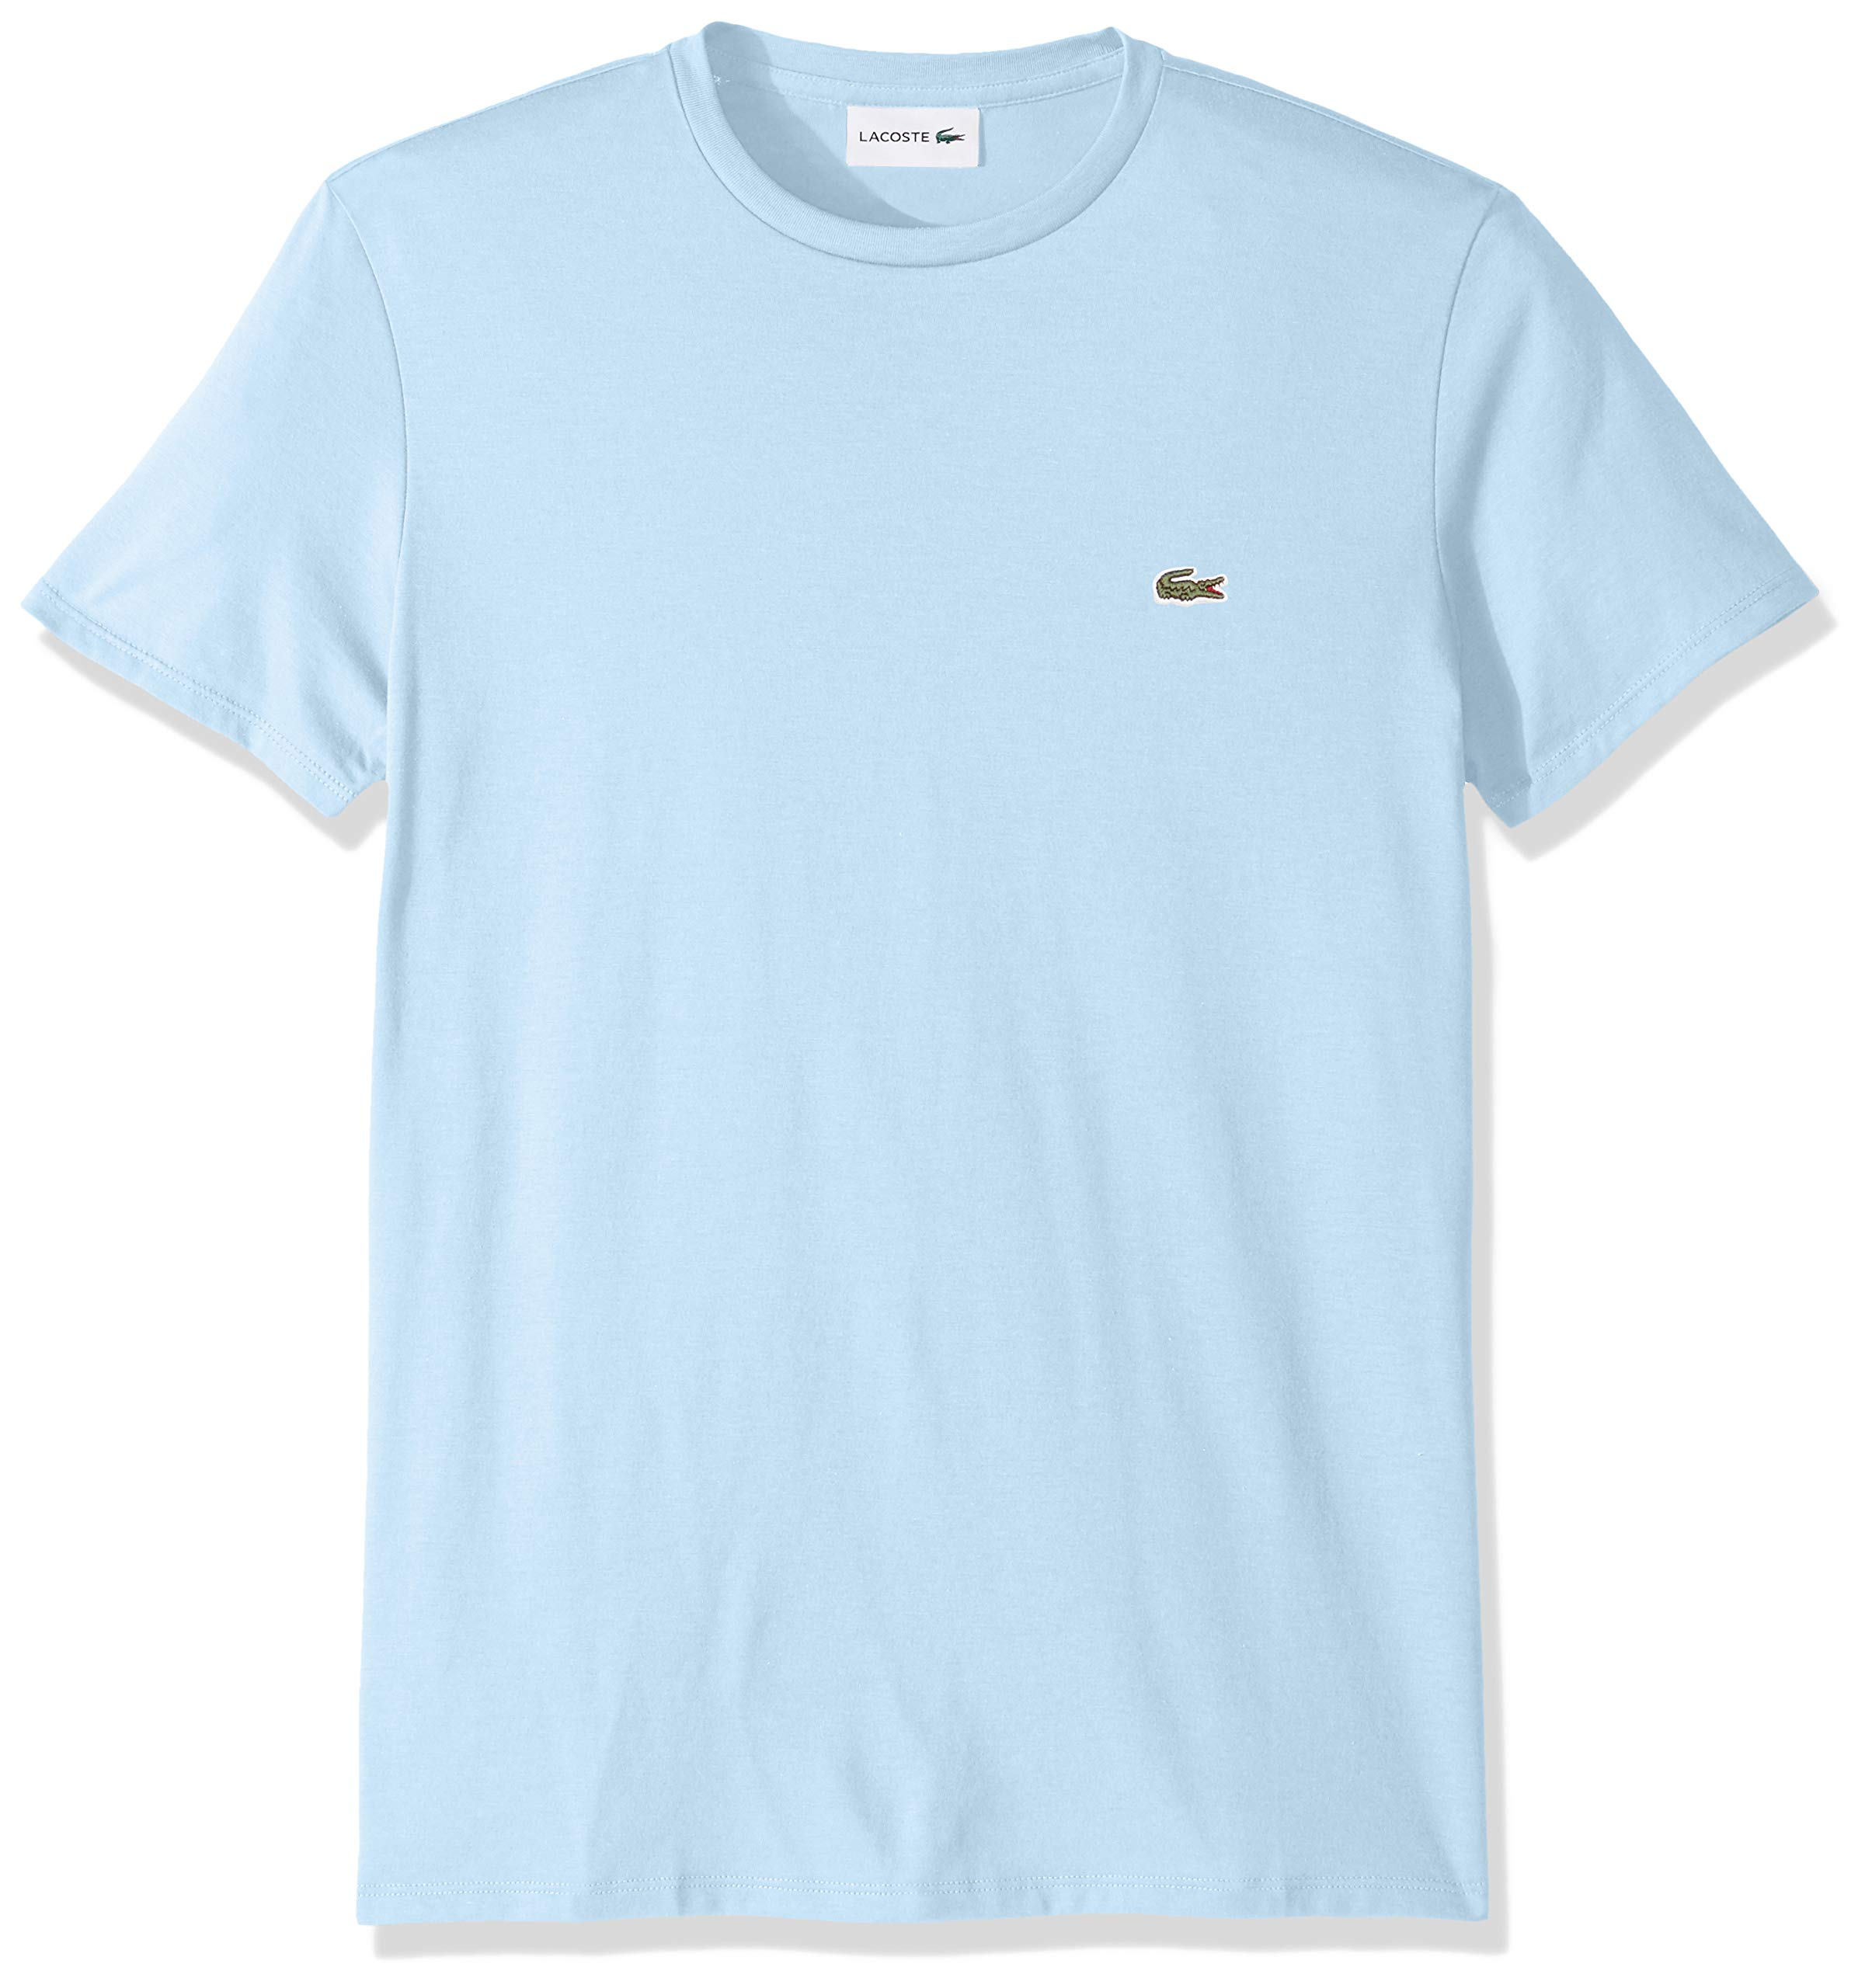 Lacoste Men's S/S PIMA Crewneck T-Shirt, Creek, X-Small